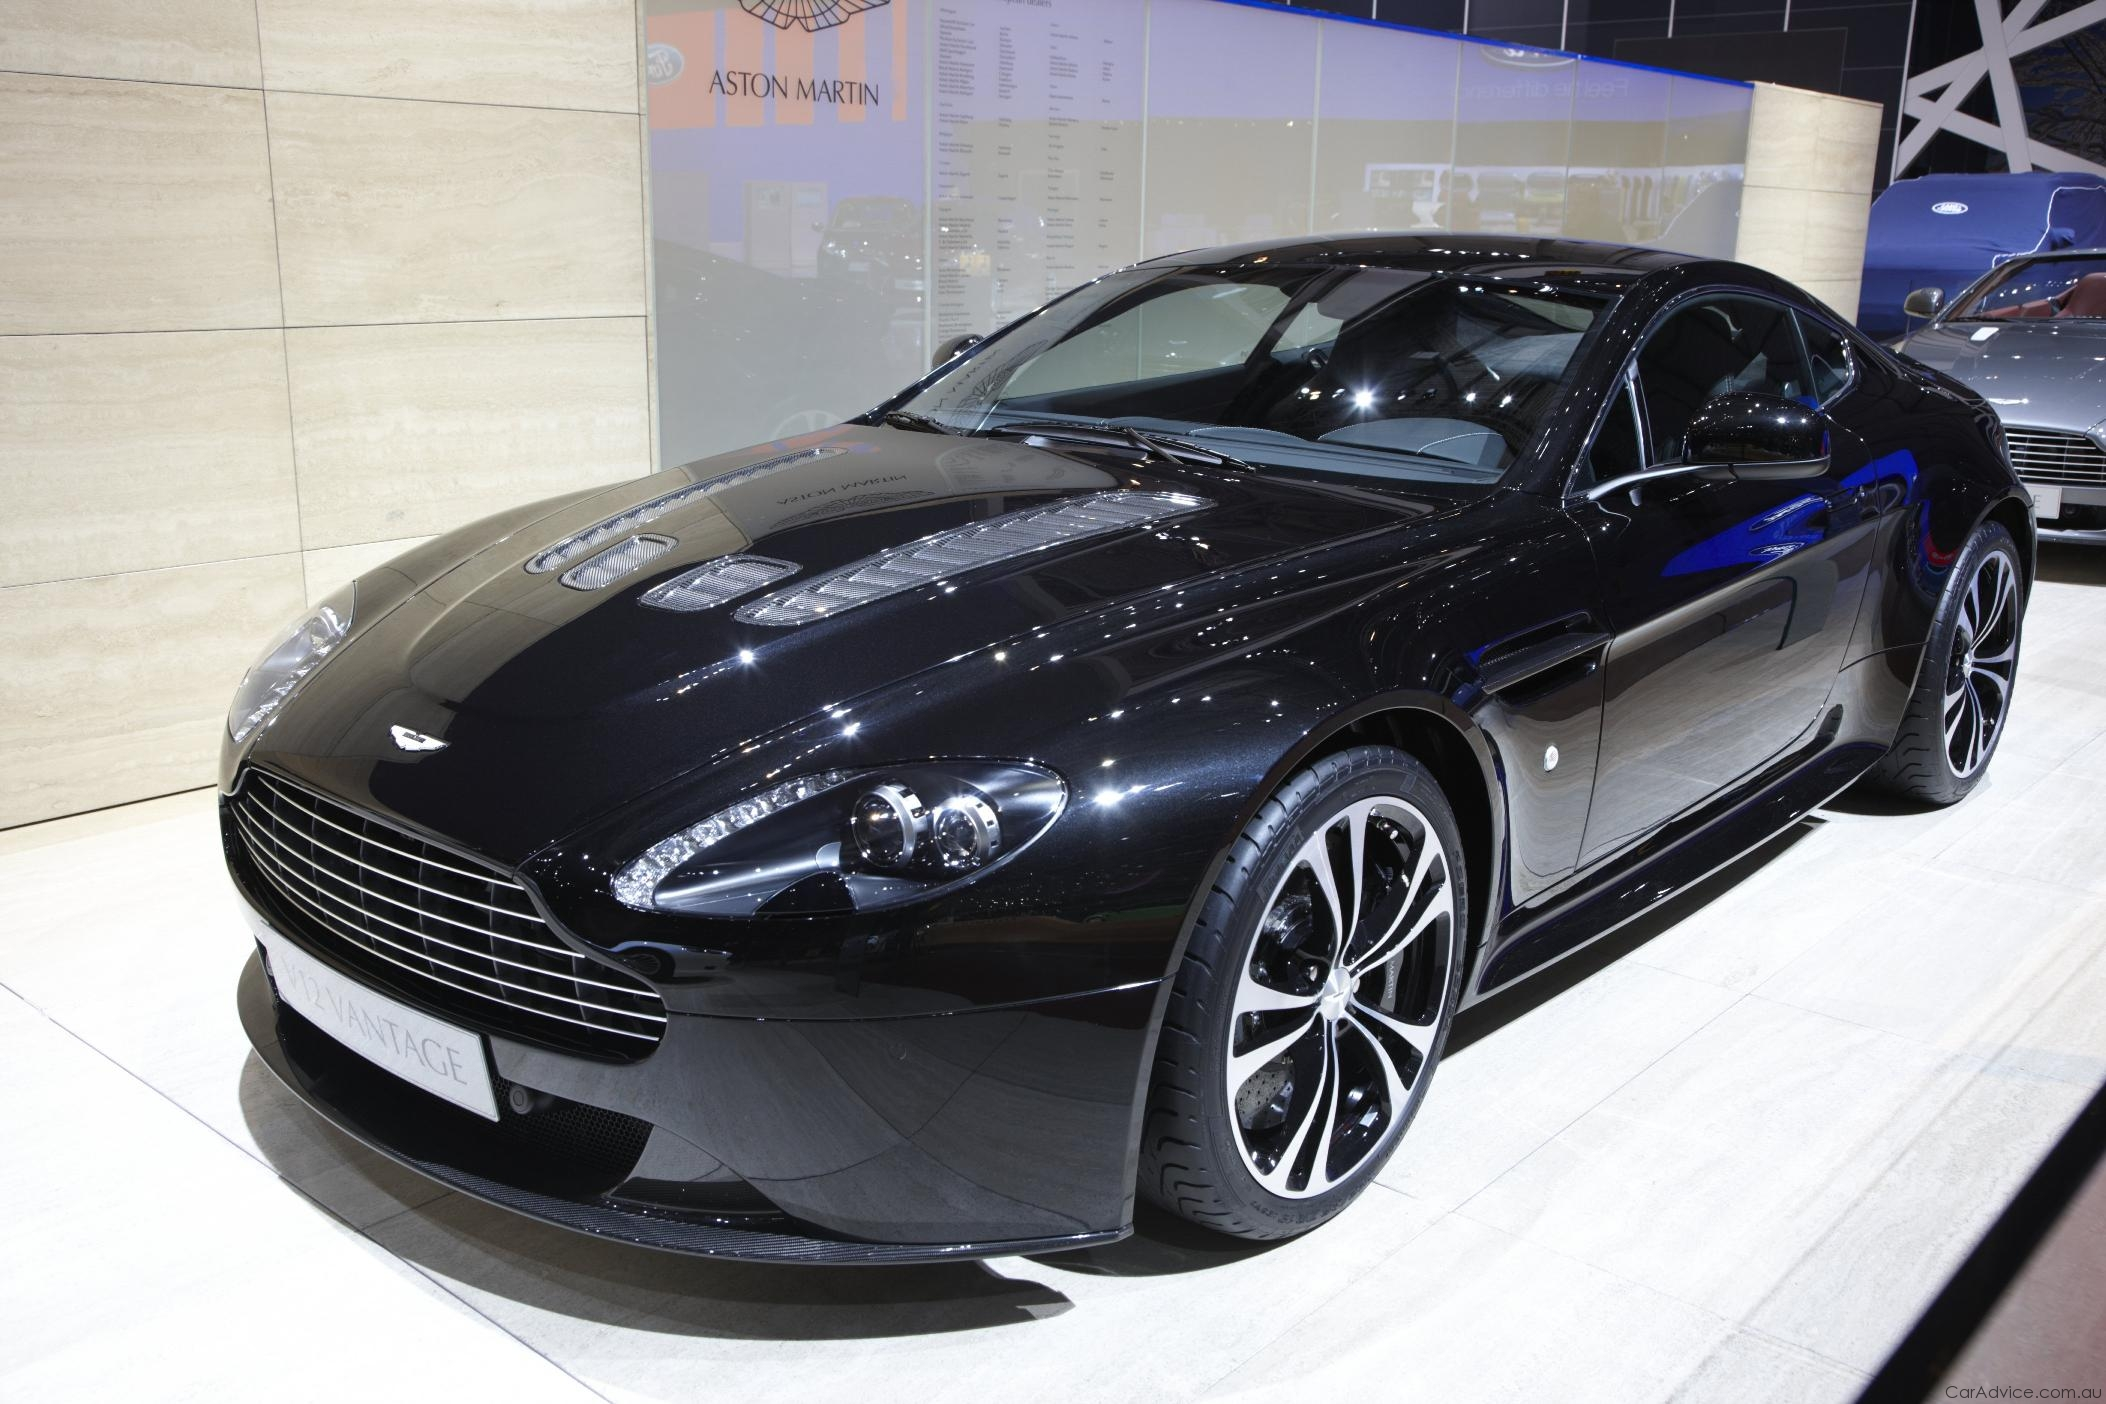 aston martin vantage - review and photos